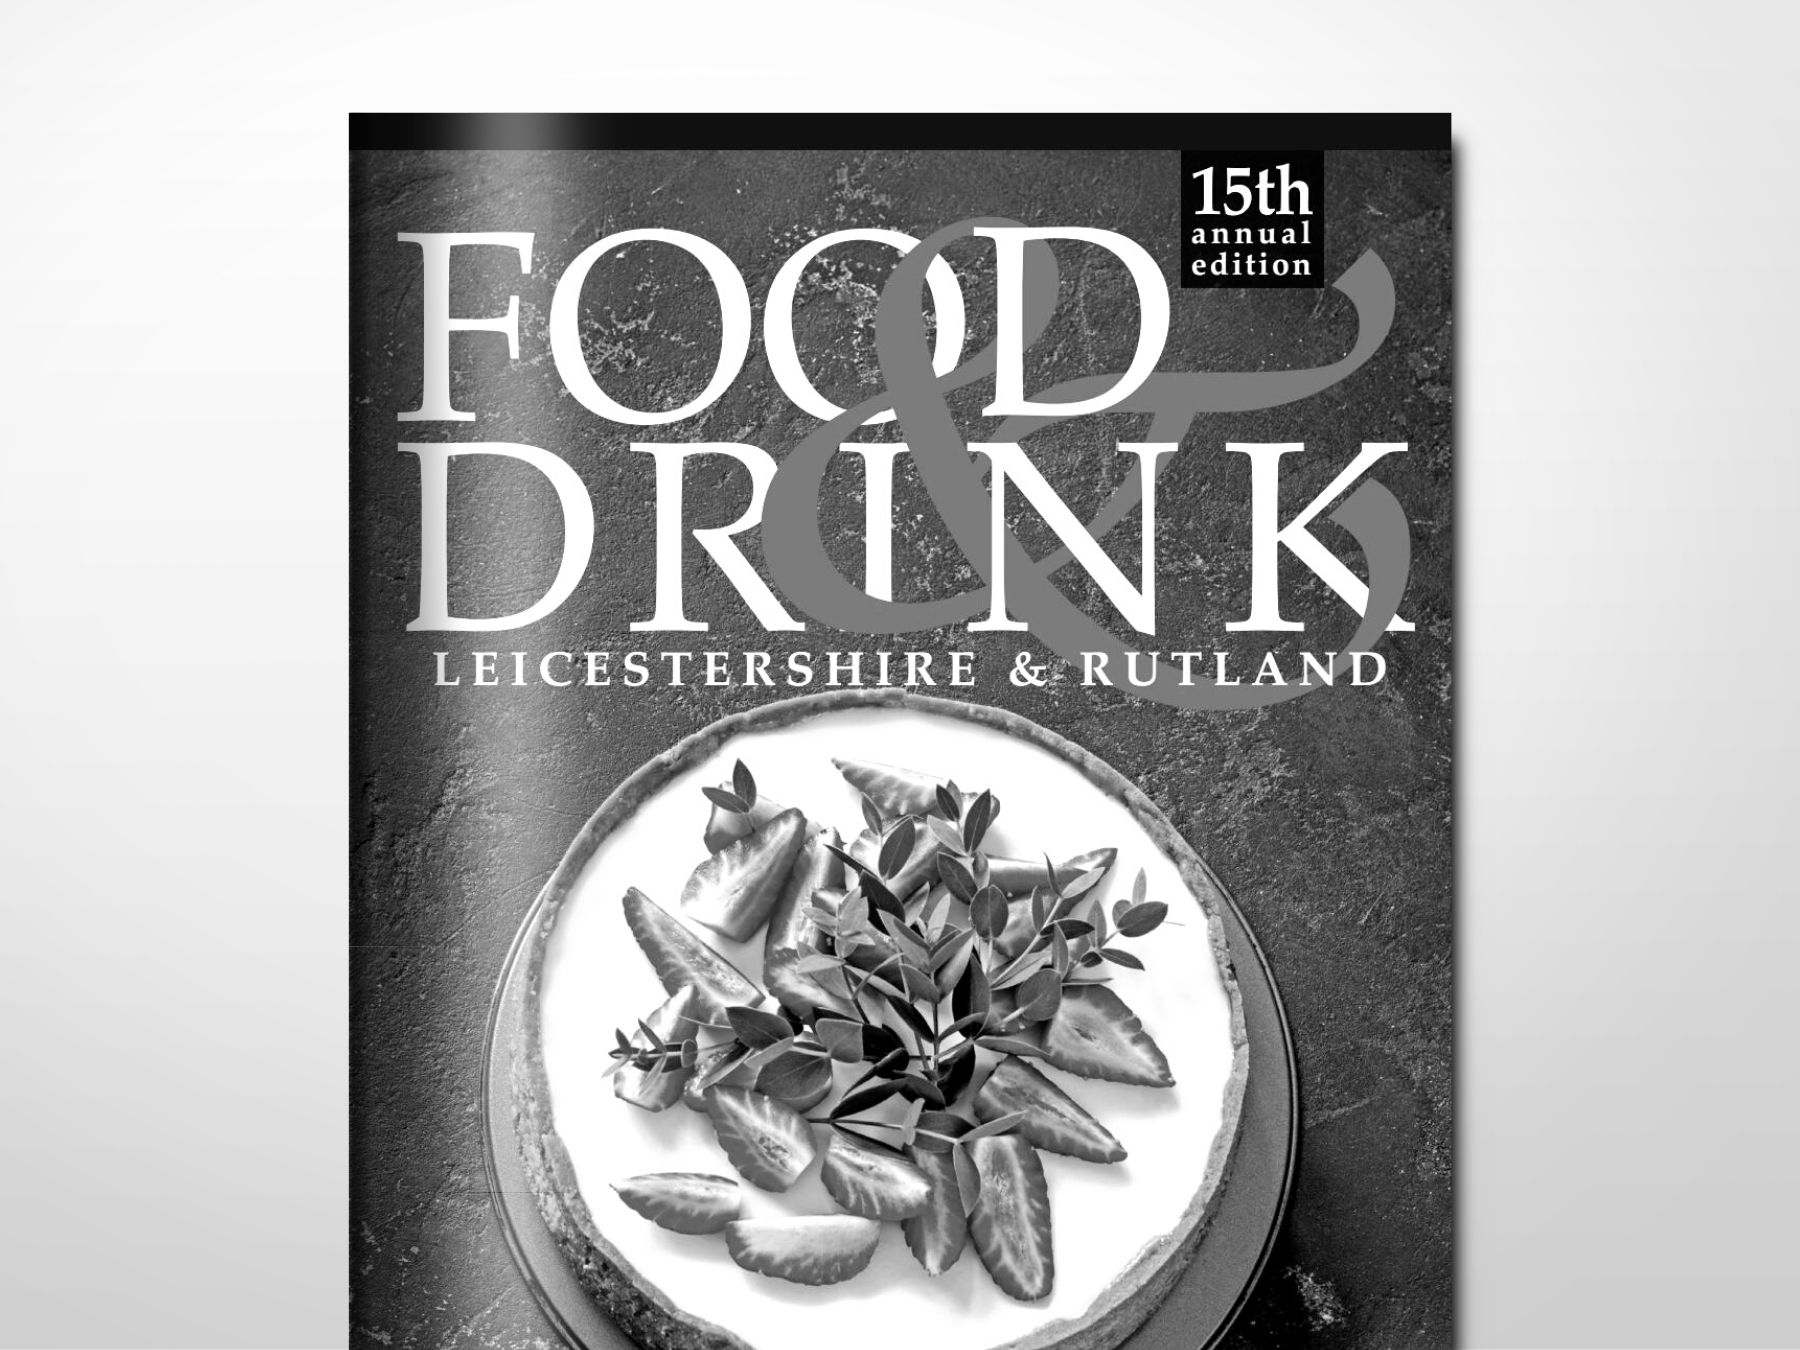 The latest copy of the Food and Drink Guide for Leicestershire and Rutland.